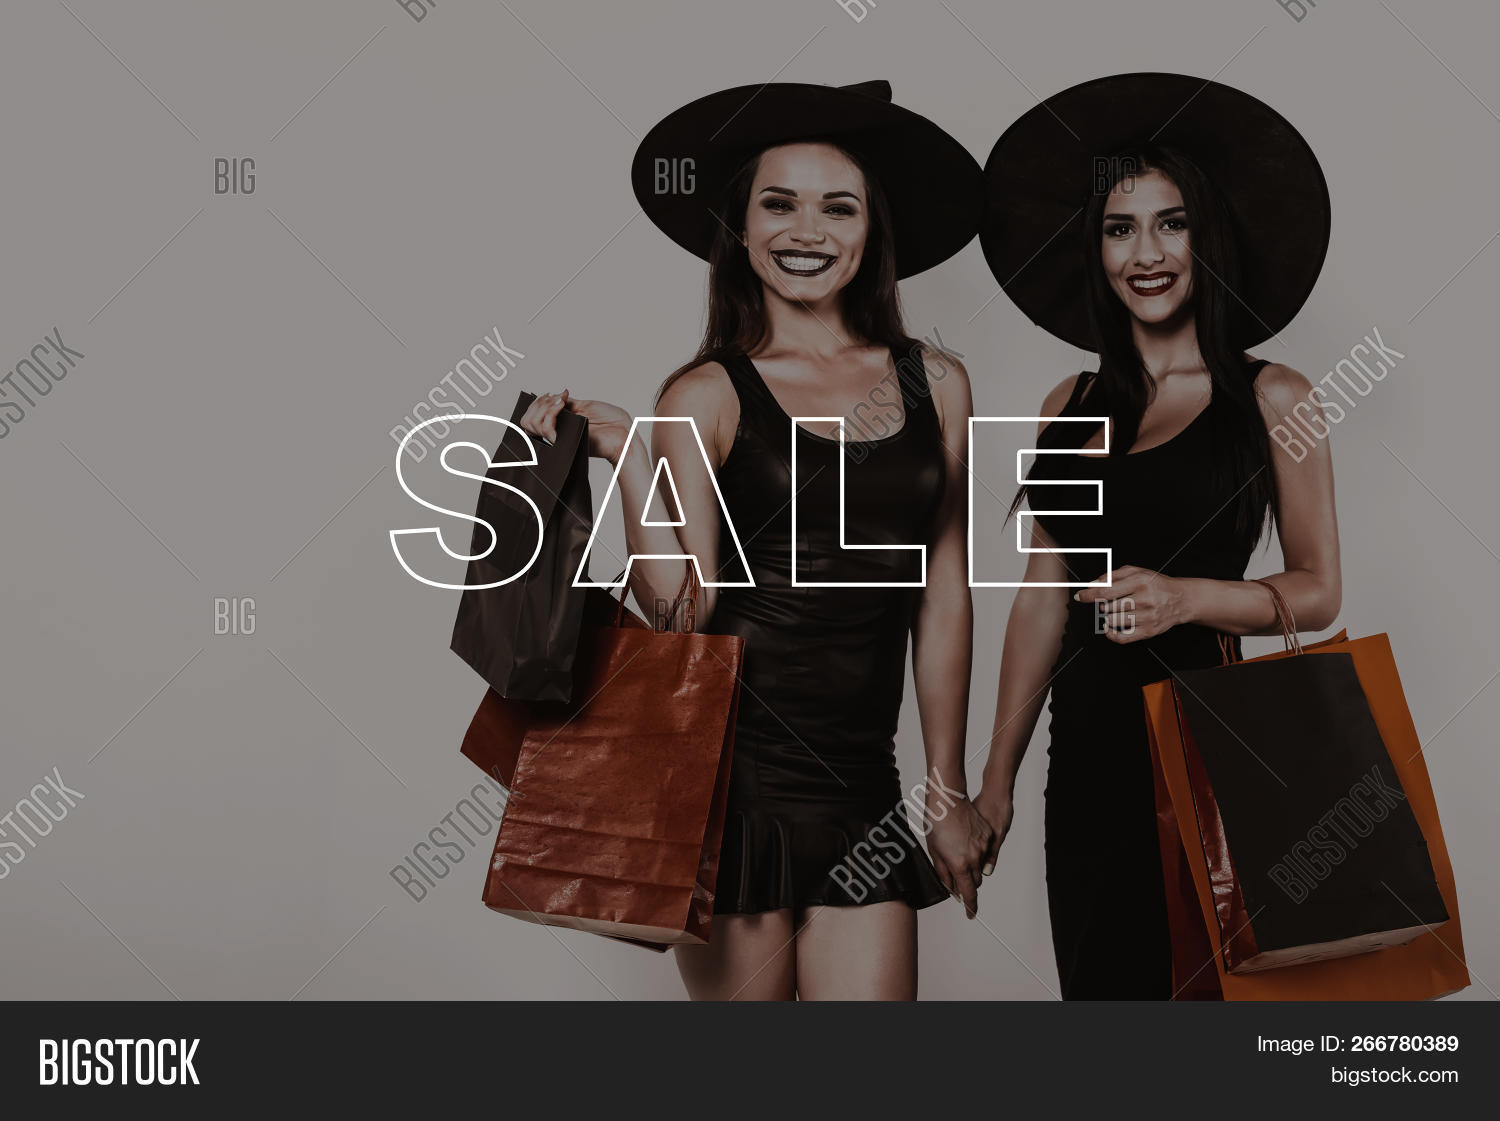 Halloween Party Packages.Lady On Sale Shop Image Photo Free Trial Bigstock